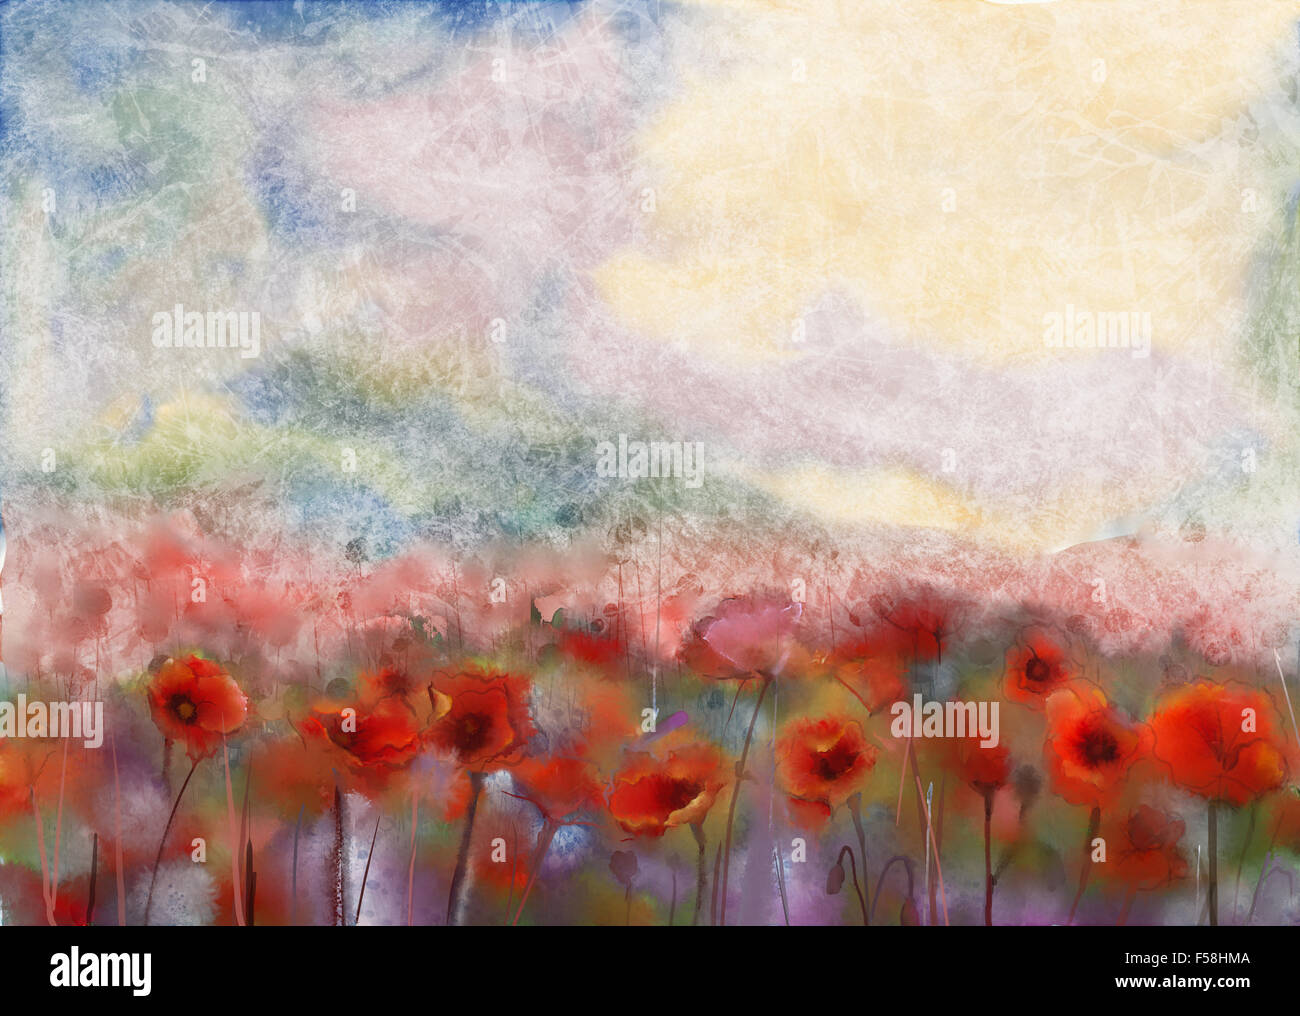 Watercolor Painting Poppy Flower Stock Photos Watercolor Painting